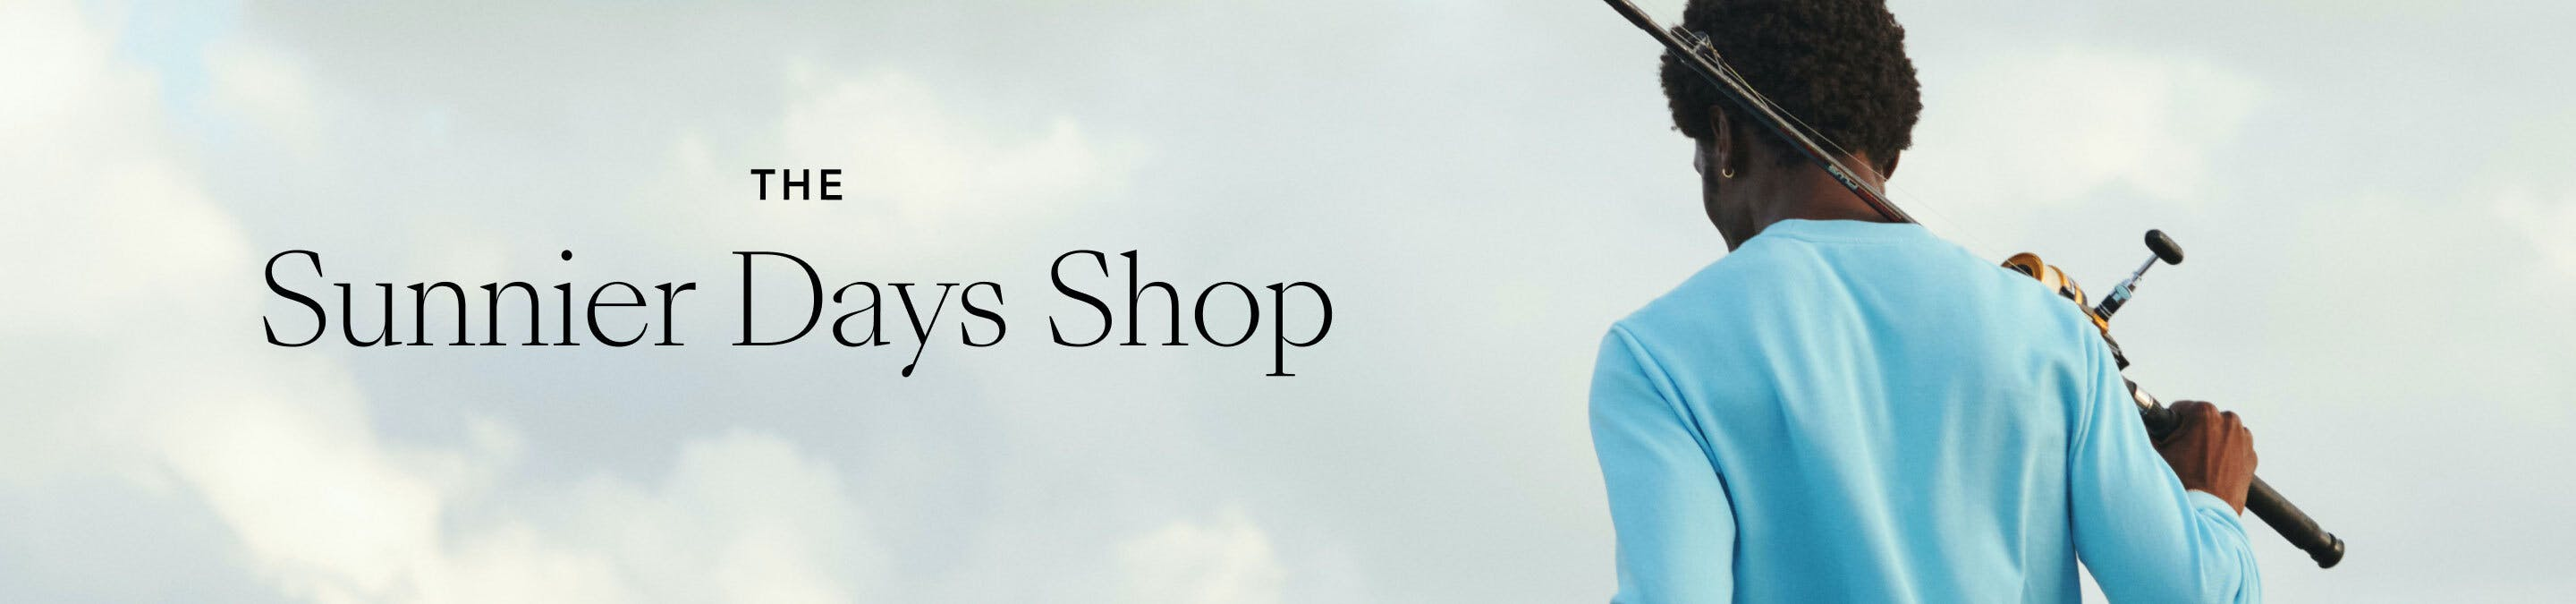 Header showing products for the The Sunnier Days Shop category